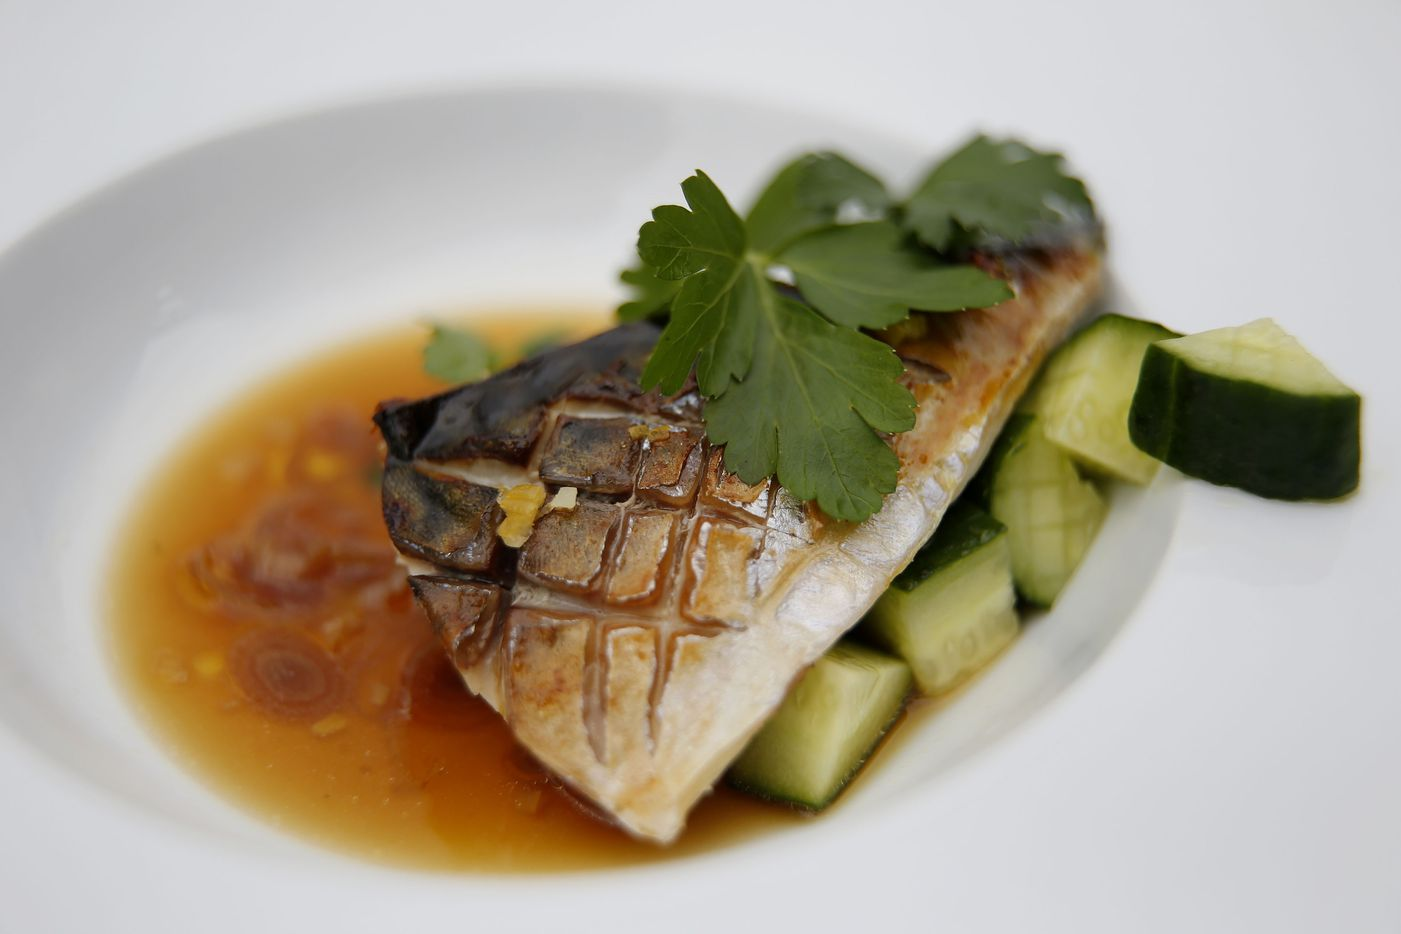 Saba shio -- grilled Norweigian mackerel with cucumber, parsley and preserved lemon